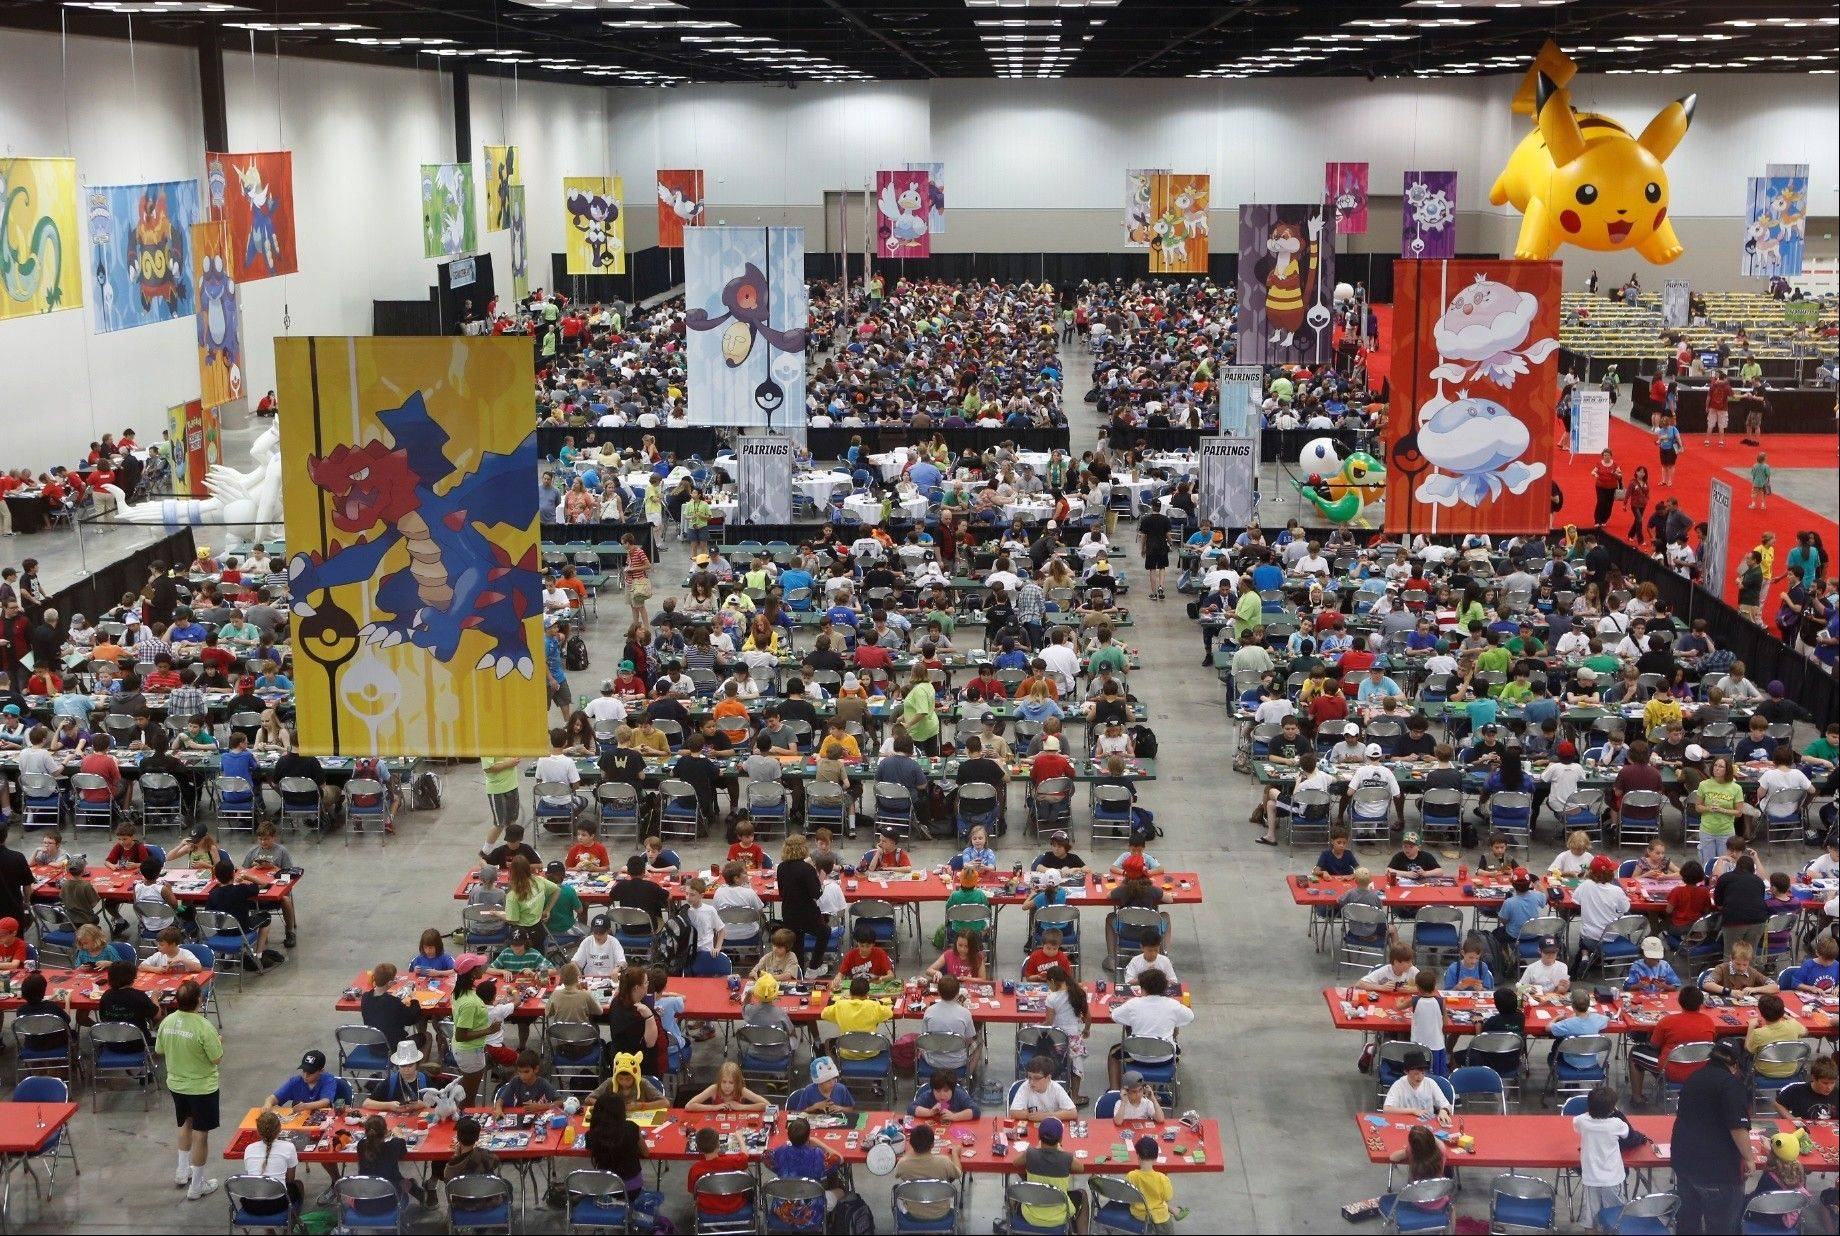 The scene at the Indiana Convention Center during the Pokémon National Championships in Indianapolis, held June 29-July 1. Des Plaines resident Manoj Sunny emerged from the video game competition as fourth in the nation, earning him a trip to Hawaii next month for the world championships.